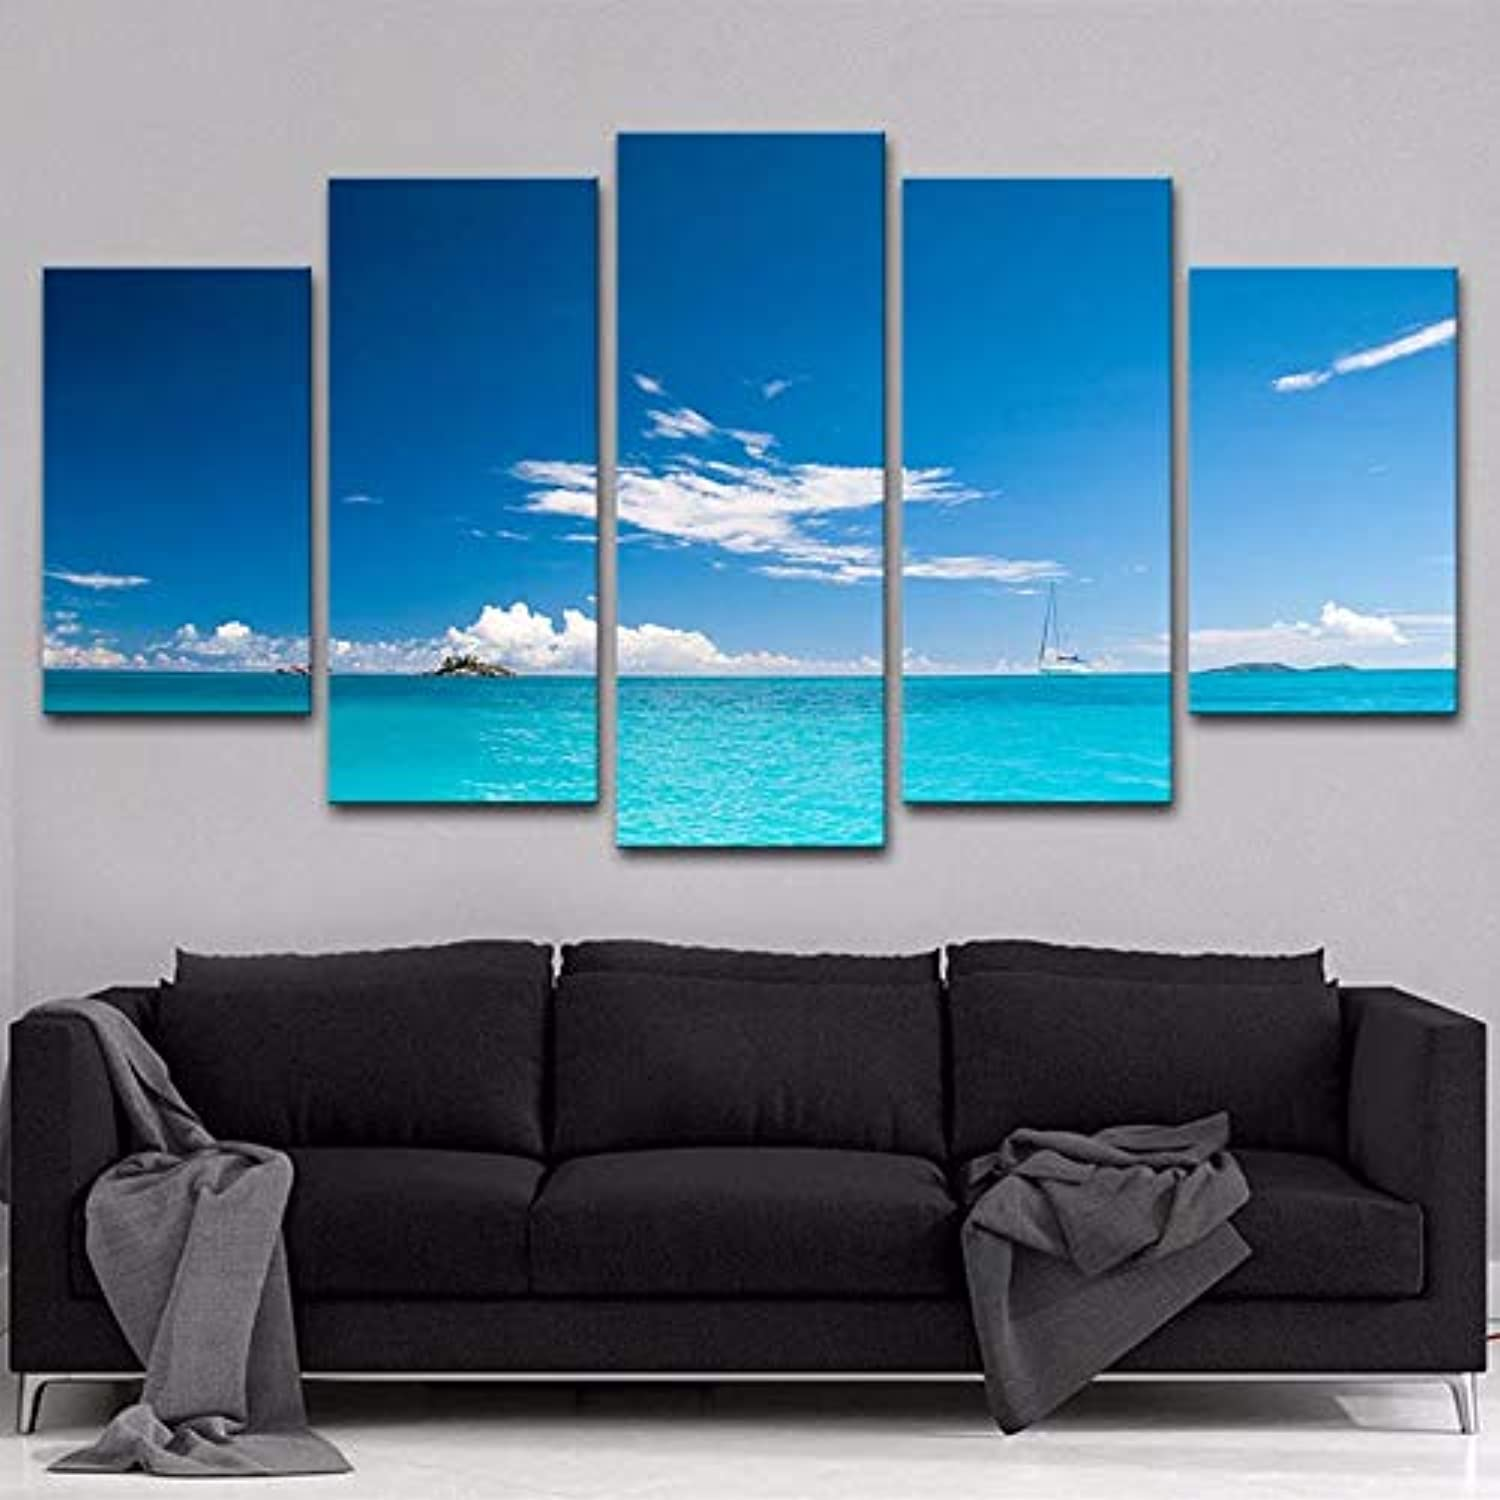 Living Room Modular Poster Frame HD Interior 5 Piece Pcs bluee Sea Landscape Modern Canvas Printed Picture Painting Wall Art